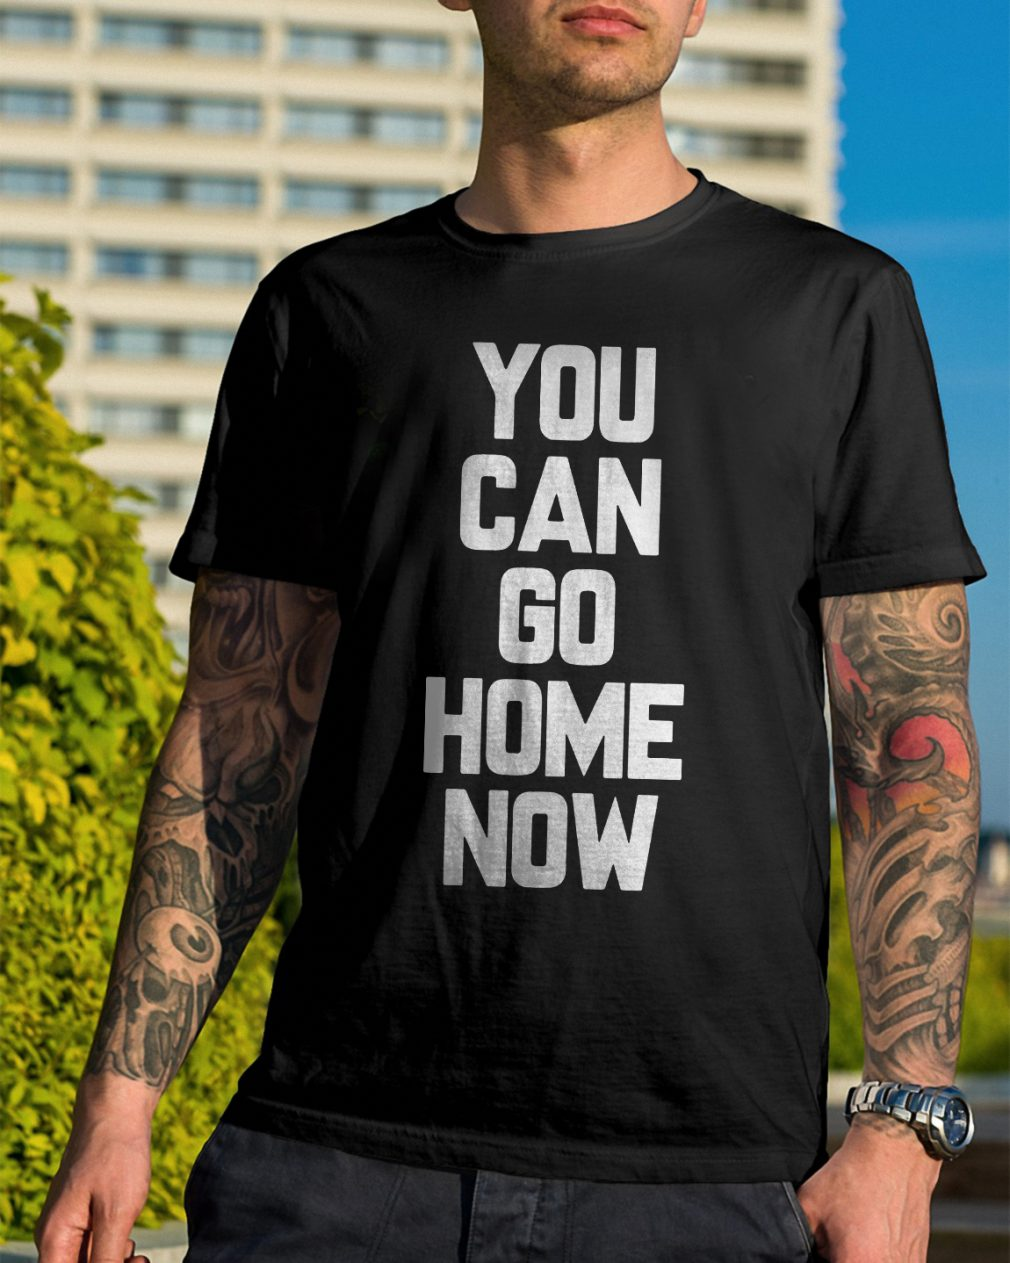 Can Go Home Now Shirt